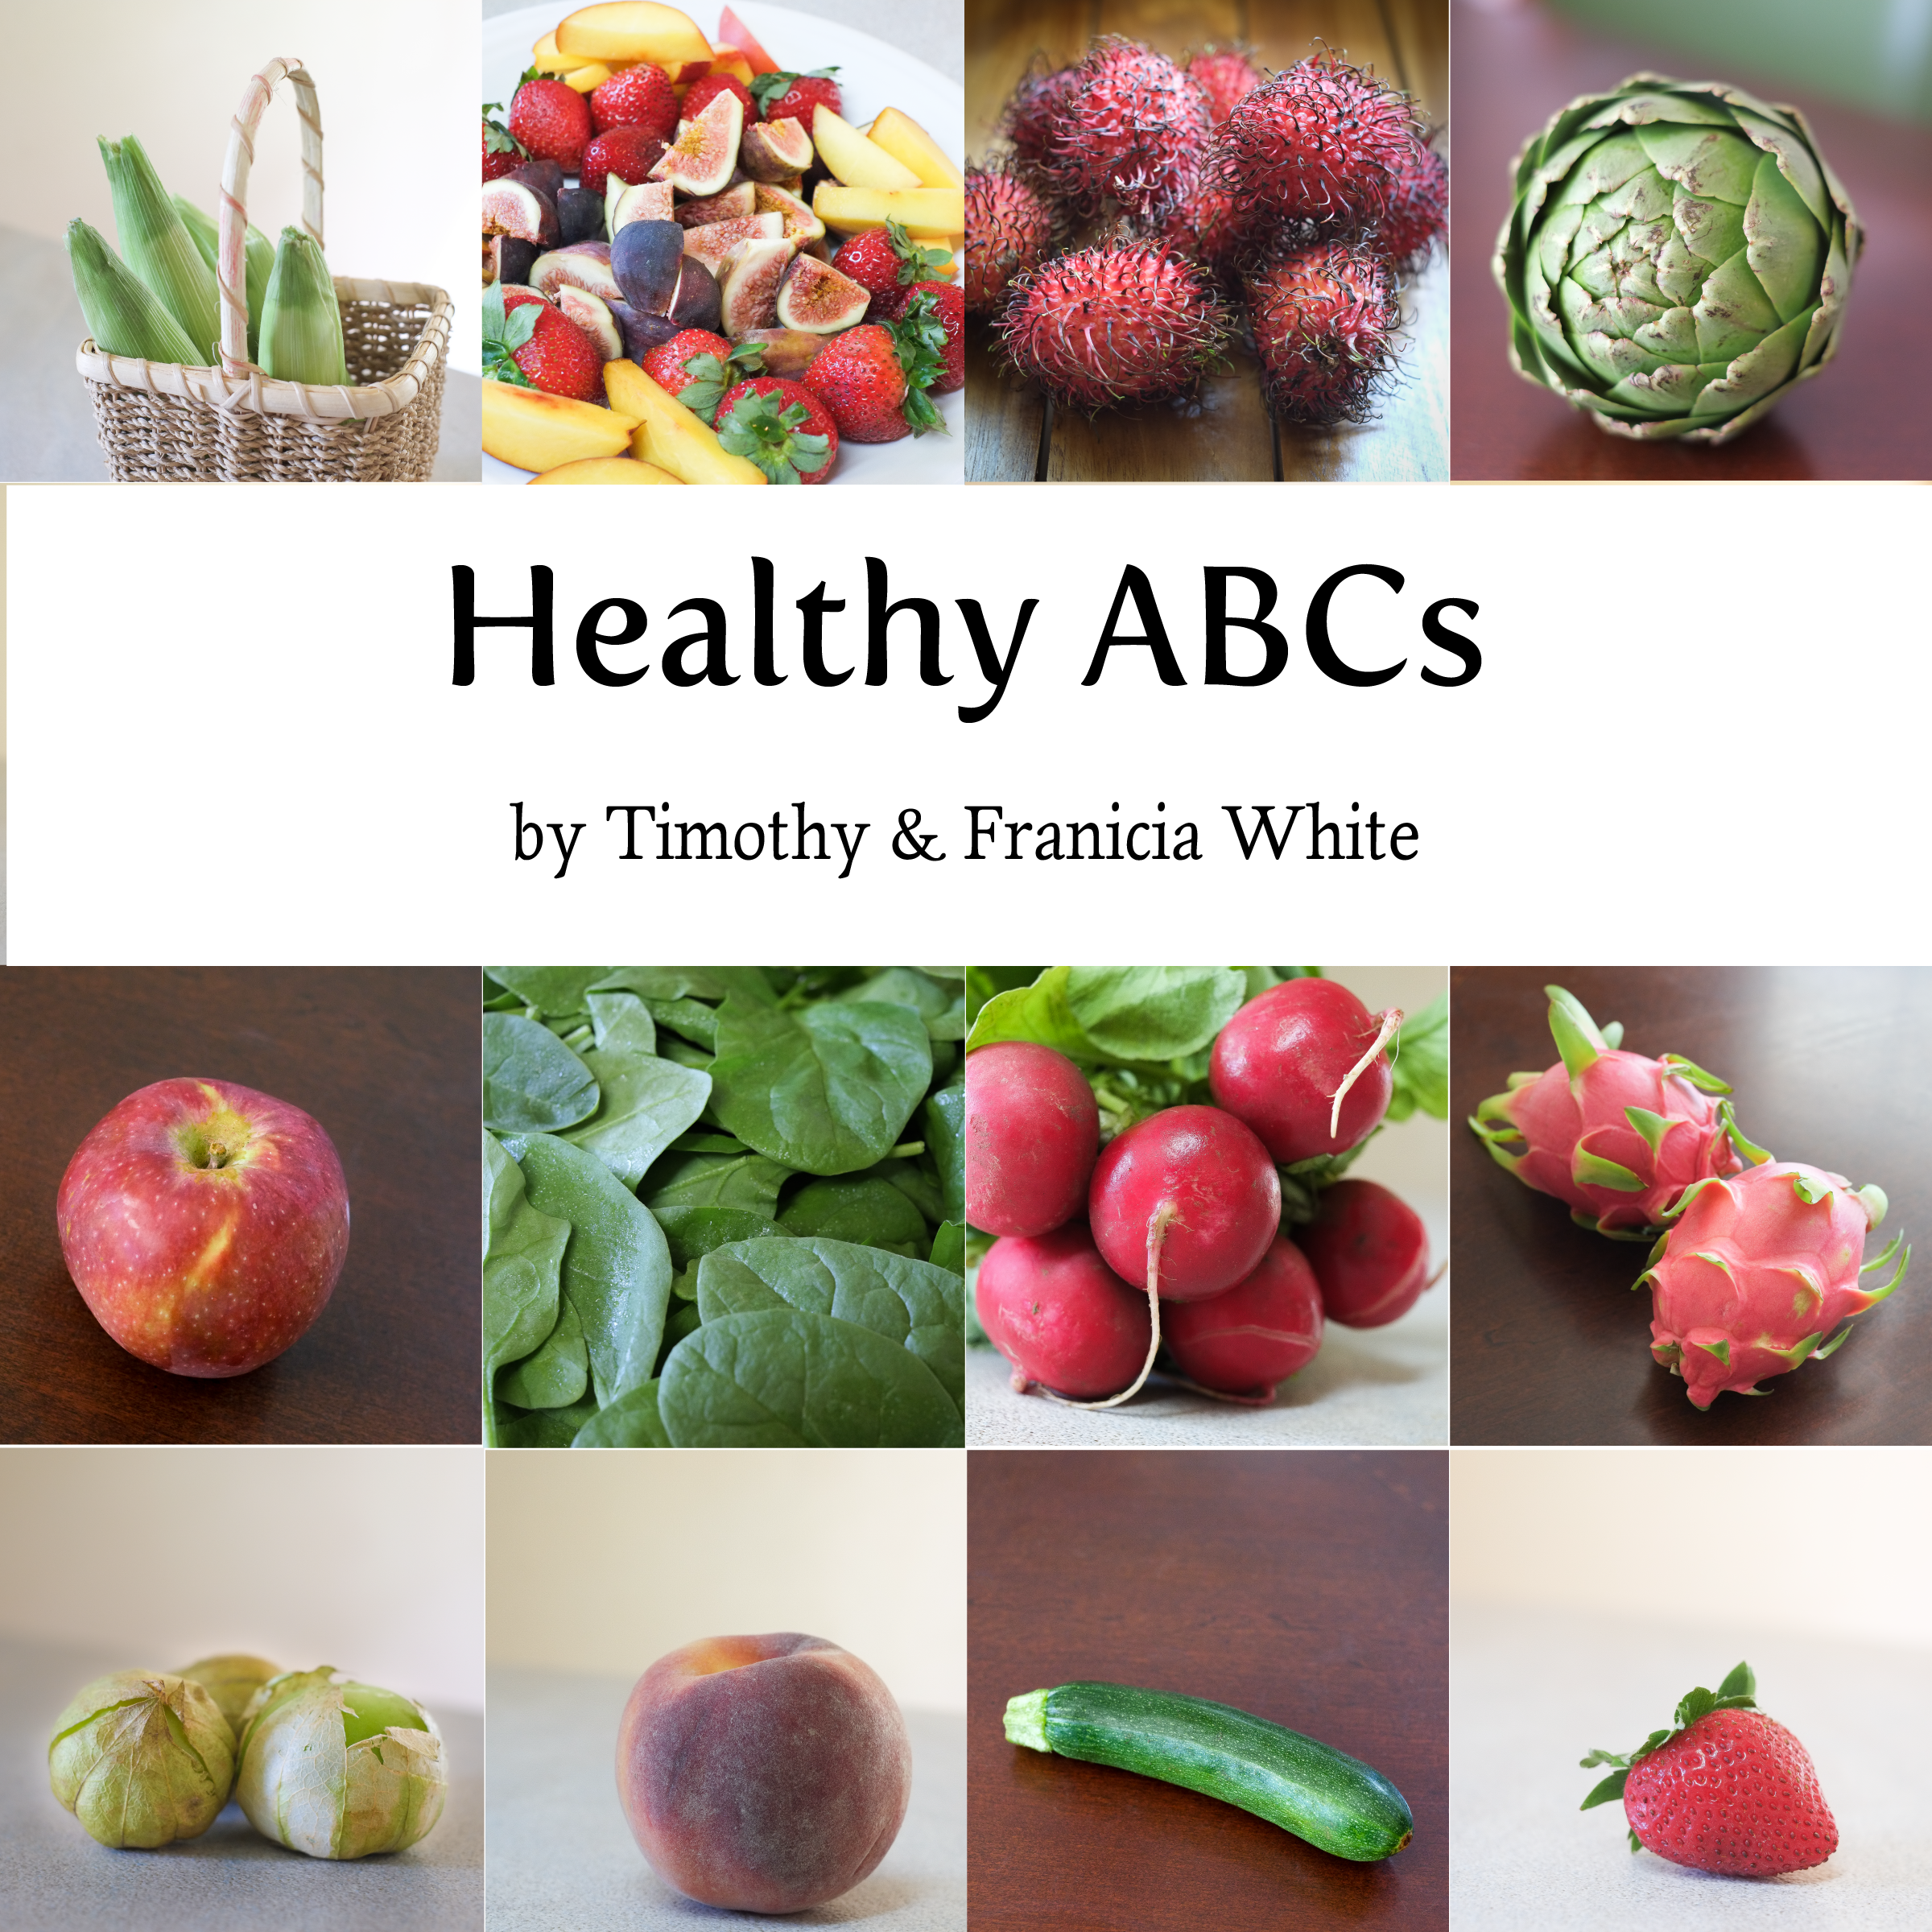 Healthy ABCs by Tim and Franicia White